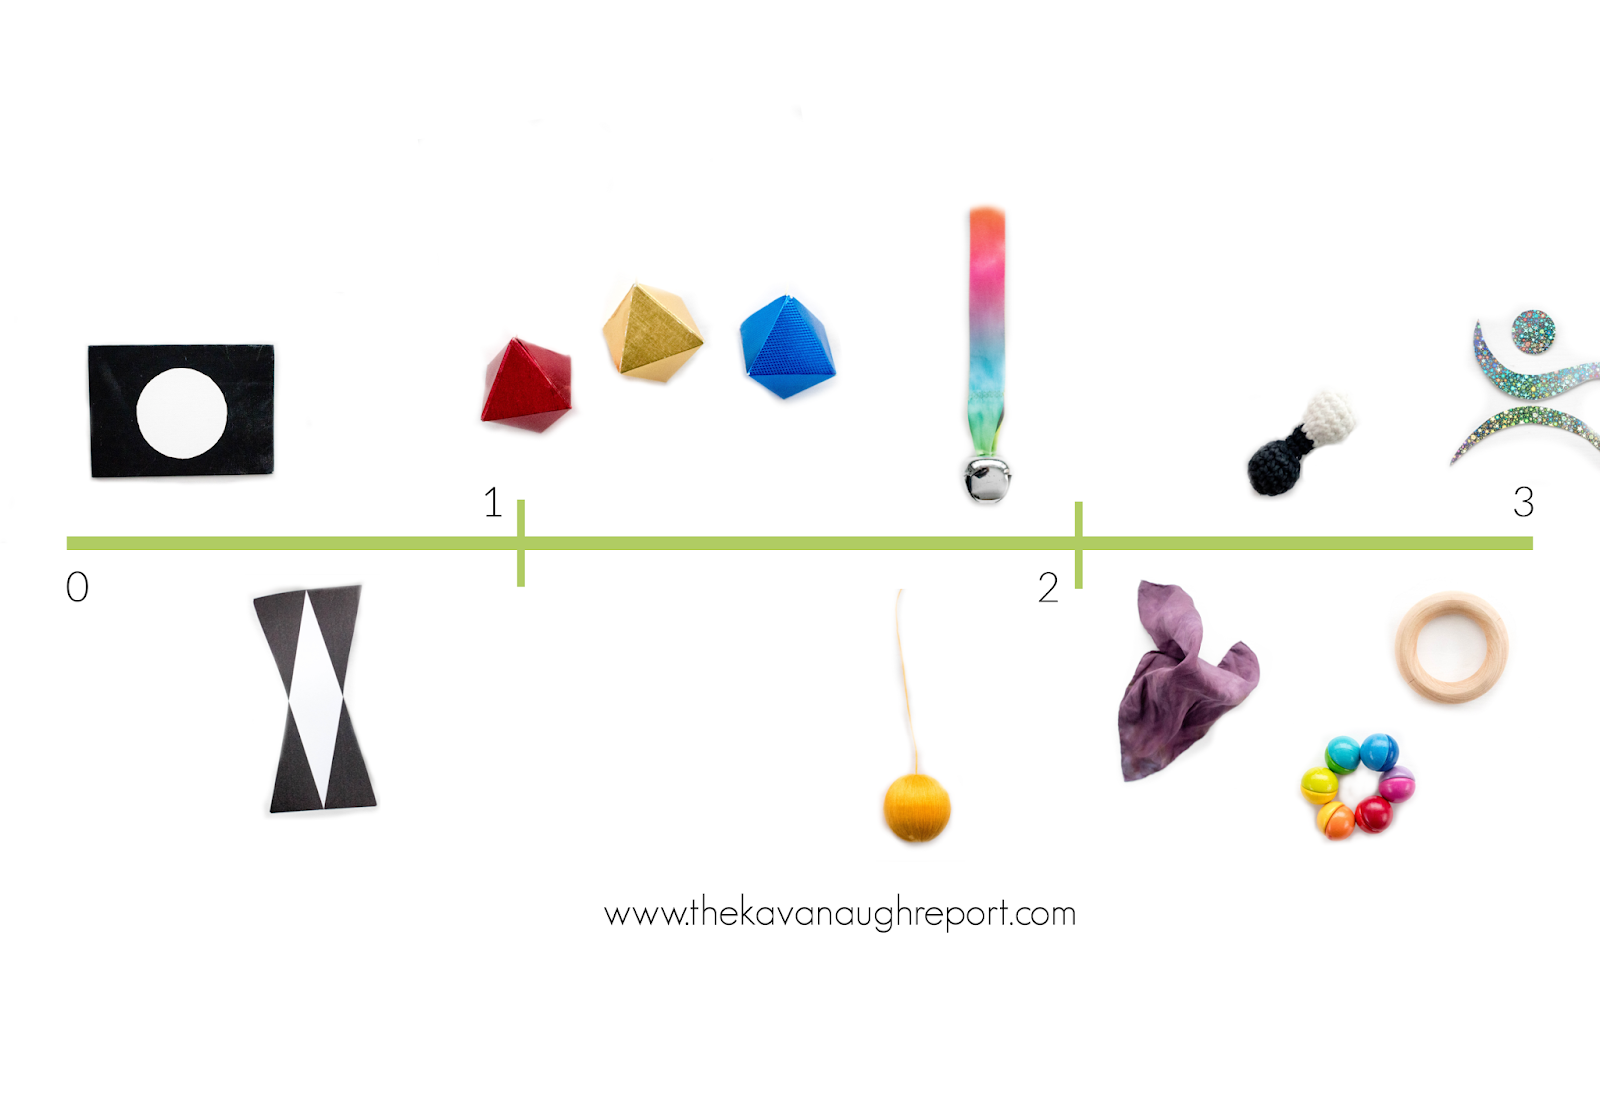 A visual timeline for Montessori friendly play from birth to 3 months, including resources for using materials